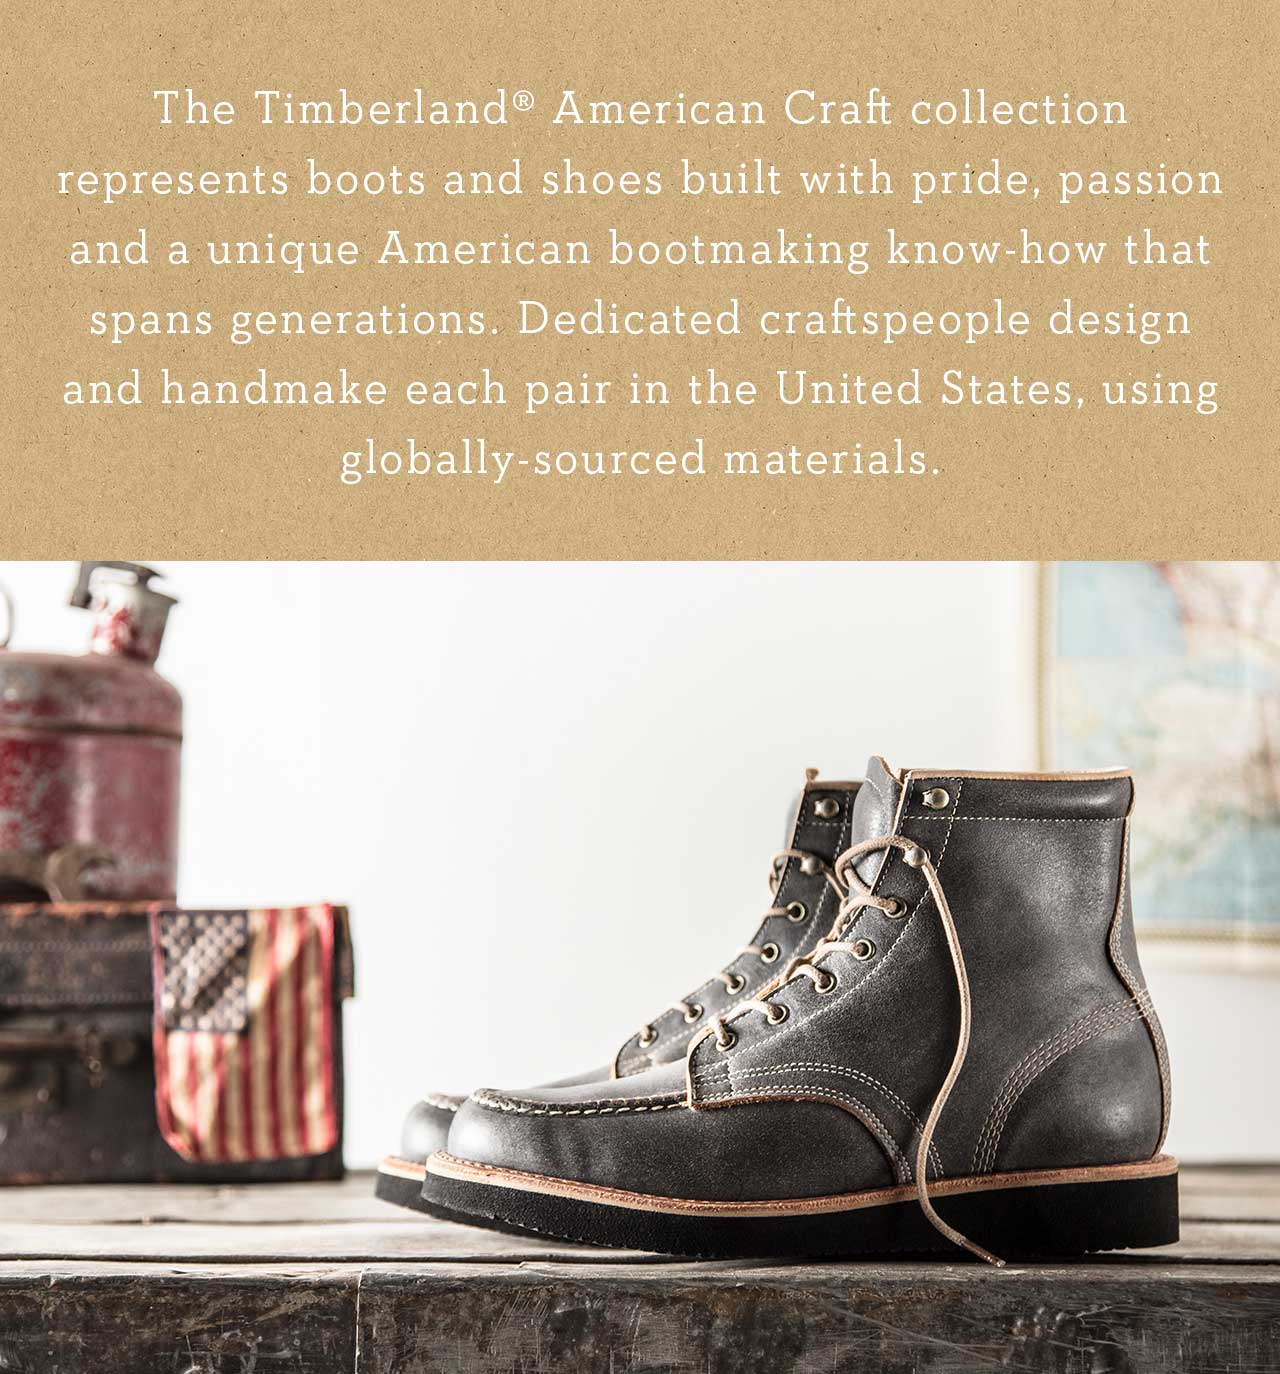 The Timberland American Craft collection represents boots and shoes built with pride, passion and a unique American bootmaking know-how that spans generations. Dedicated craftspeople design and handmake each pair in the United States, using globally-sourced materials.